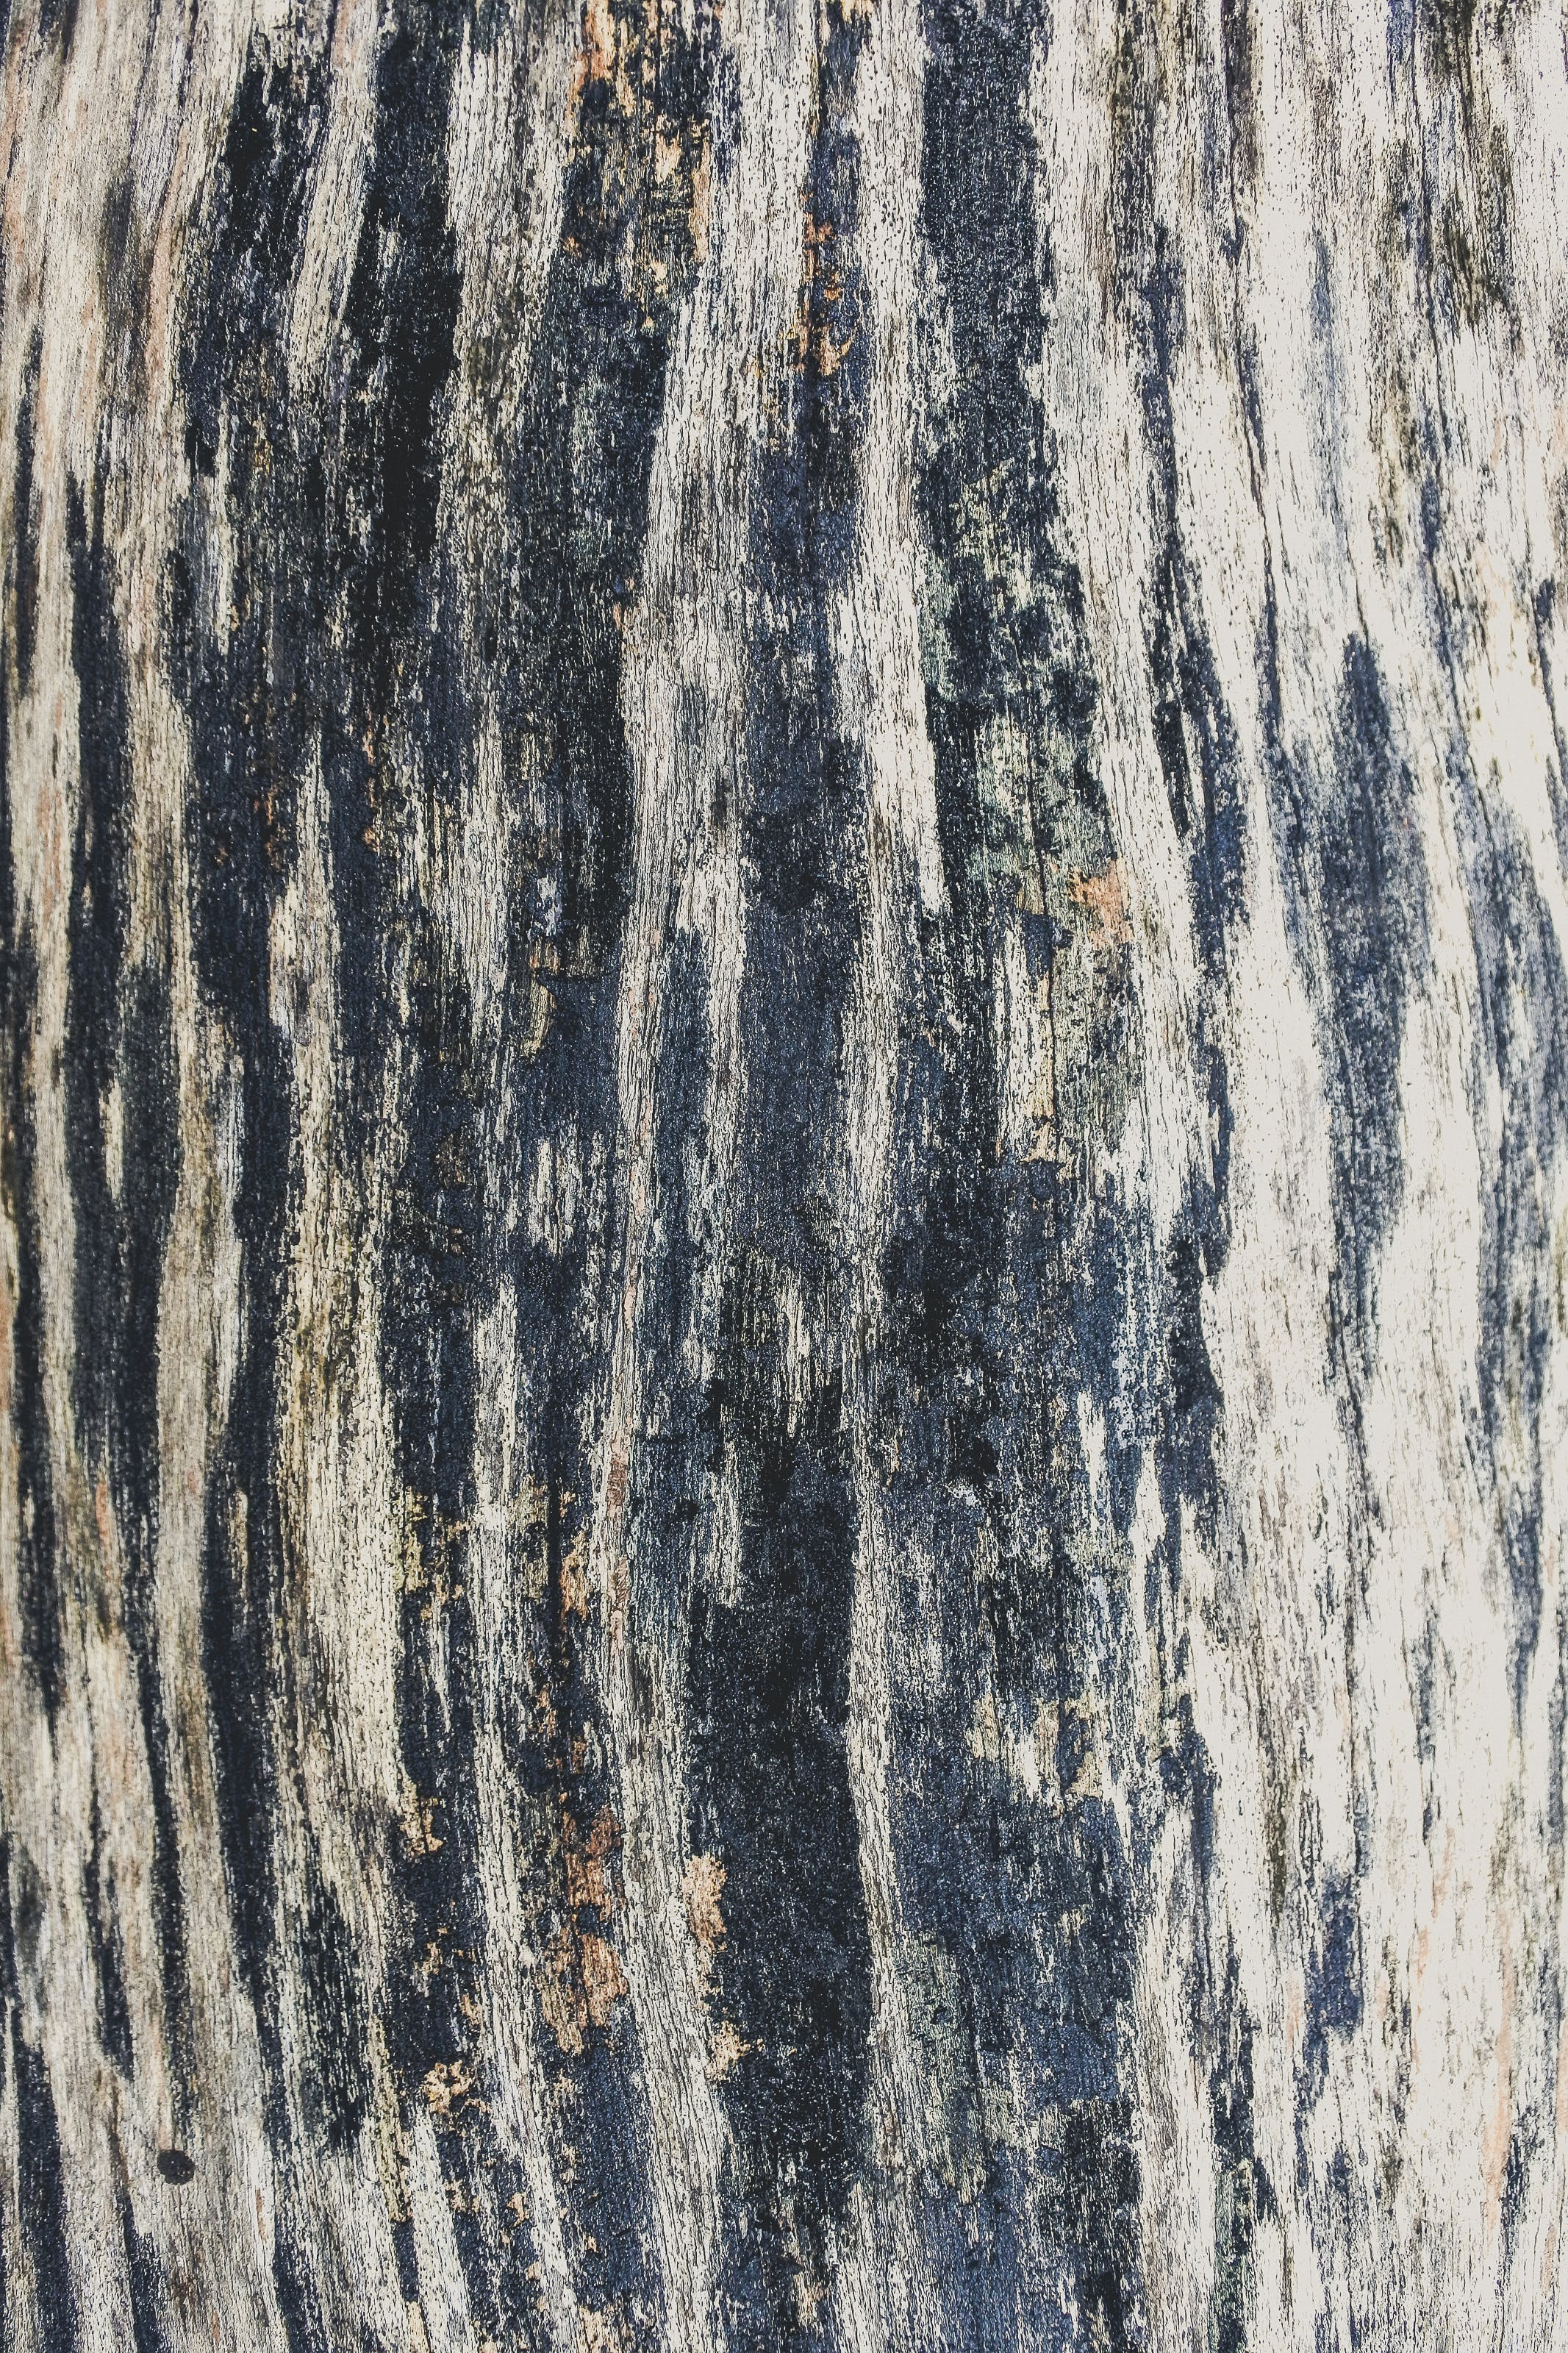 Free stock photo of wood, dry, texture, abstract